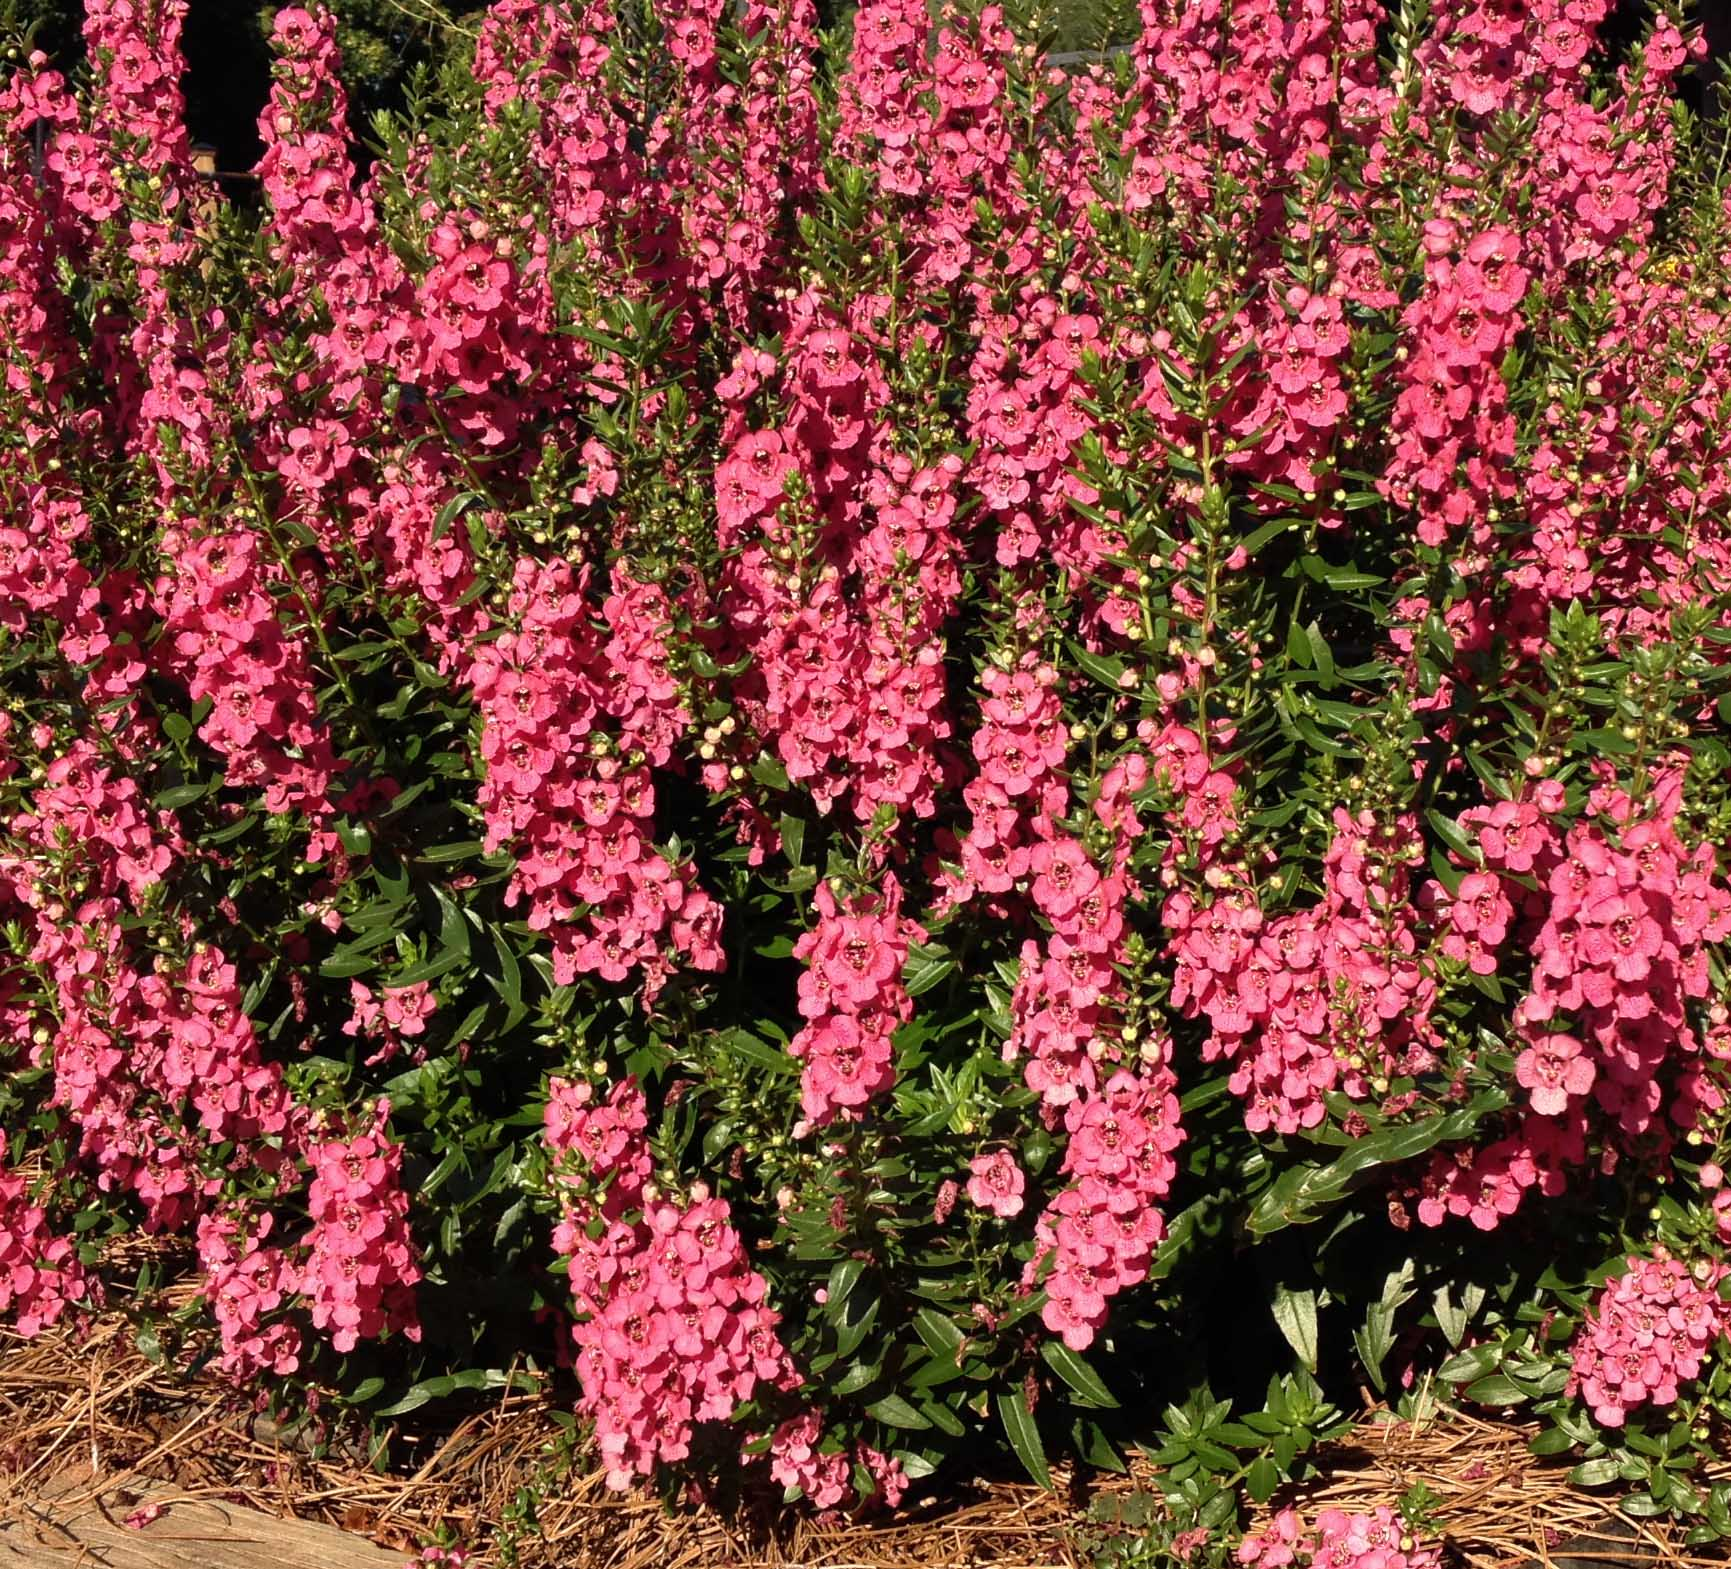 """This angelonia stood out amongst the others. It started out early by outblooming its competitors and has remained strong through the hottest temperatures. The plants are compact and sturdy."""